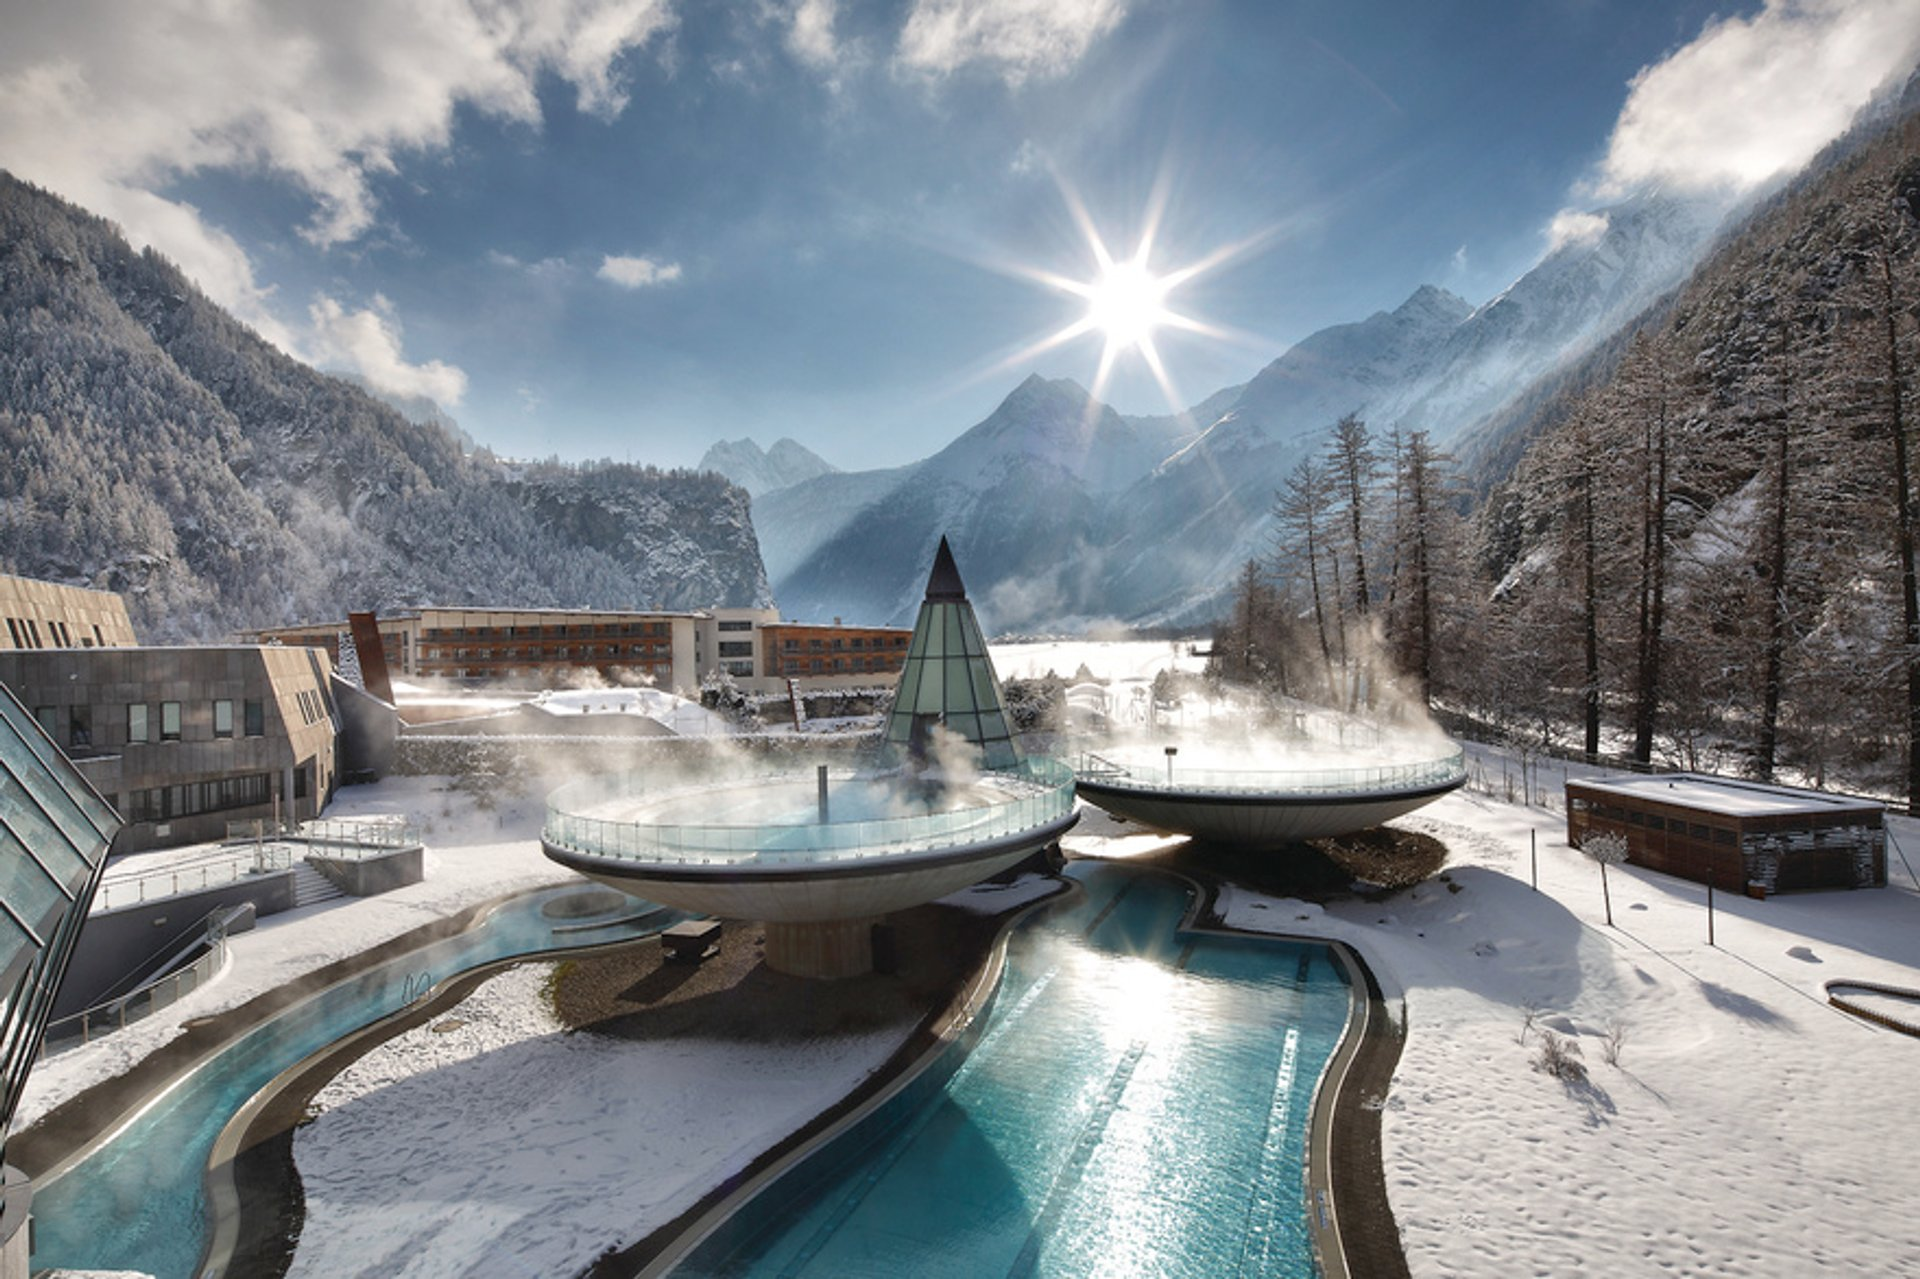 Winter Thermal Baths in Austria 2019 - Best Time